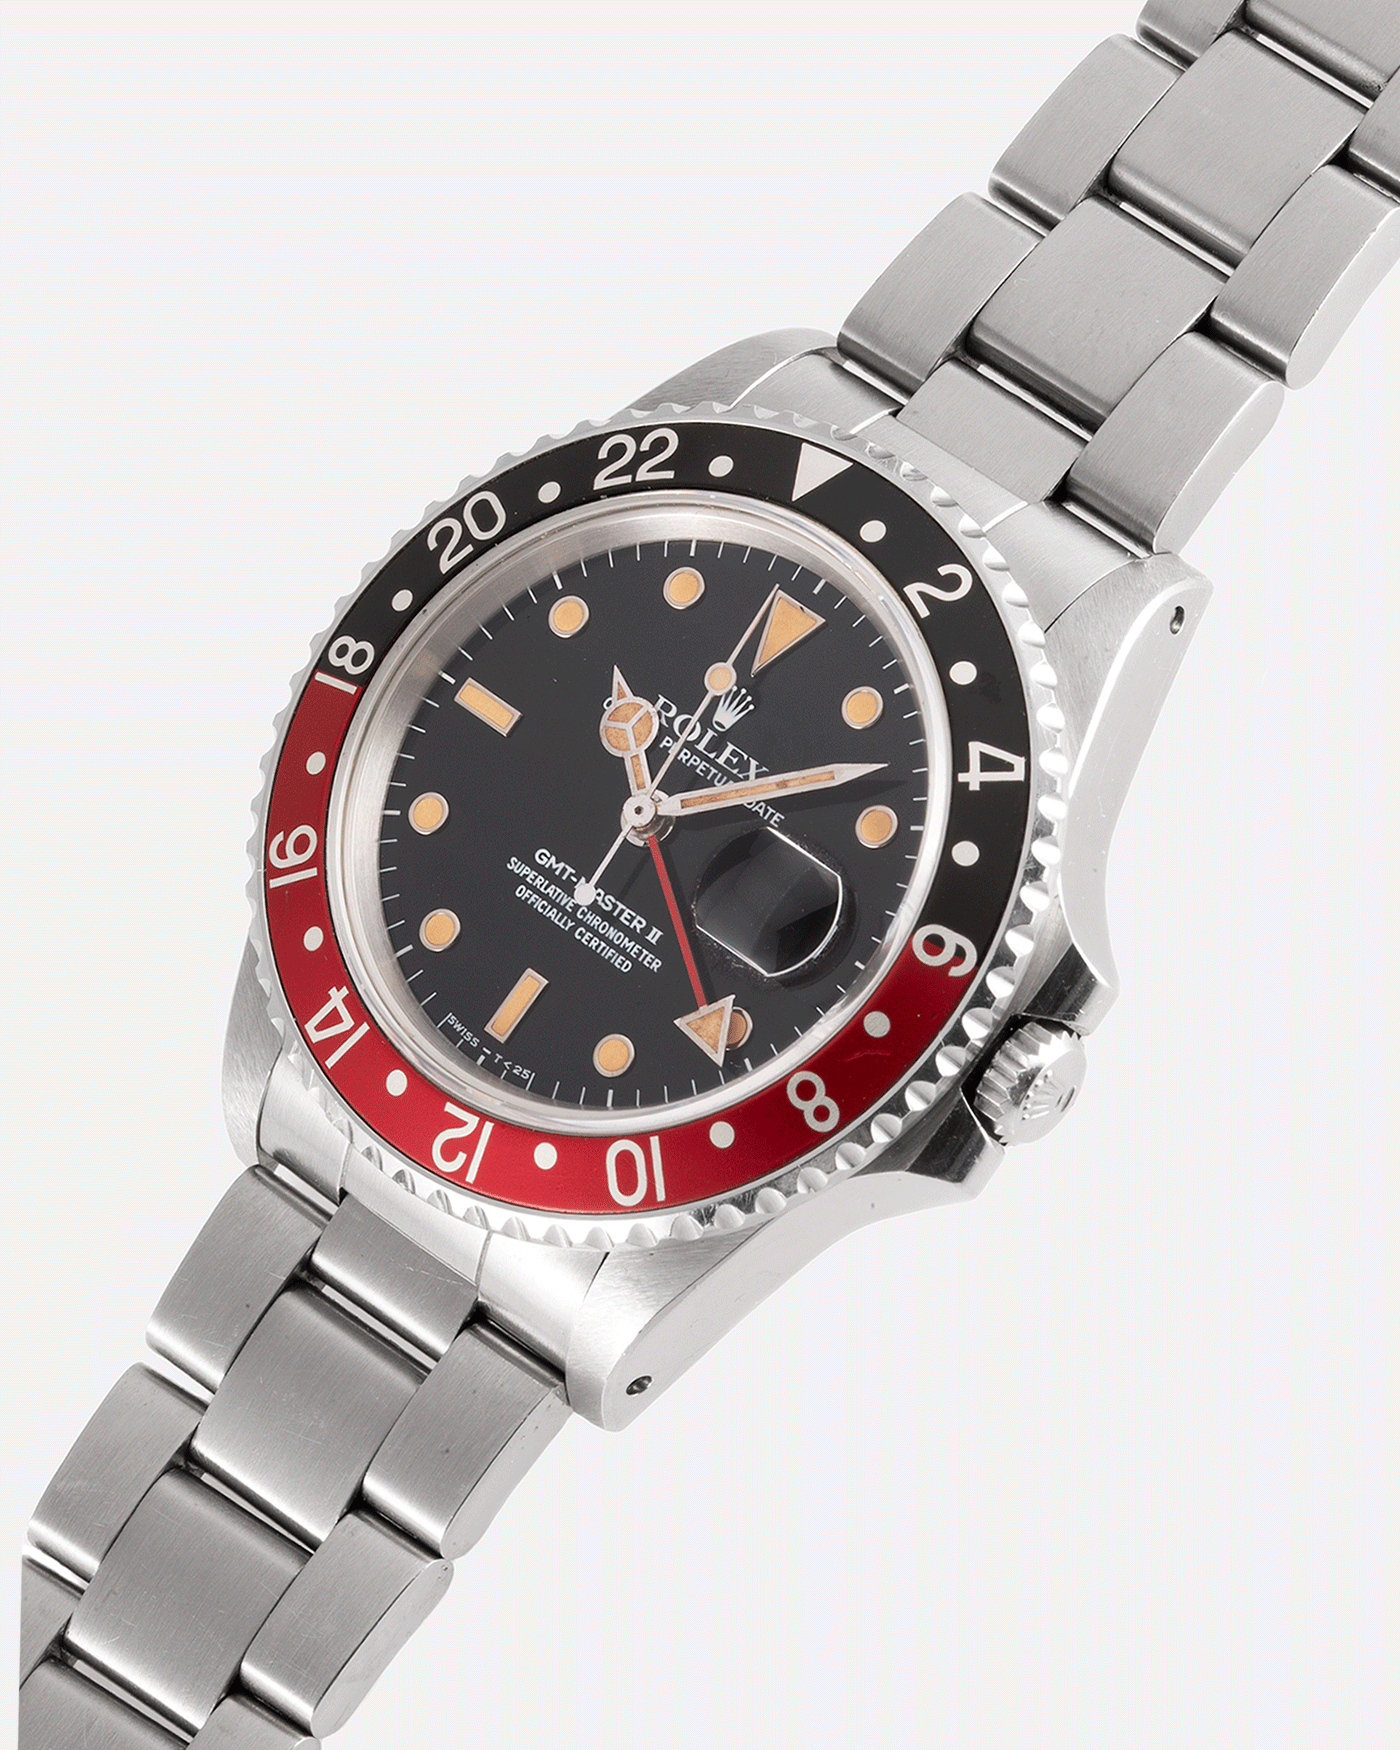 Brand: Rolex Year: 1987 Model: GMT-Master II Reference Number: 16760 Serial Number: 963XXXX Material: Stainless Steel Movement: Cal. 3085 Case Diameter: 40mm Lug Width: 20mm Bracelet/Strap: Rolex Heavy Oyster 78360 with '501' Endlinks and 'L3' Clasp